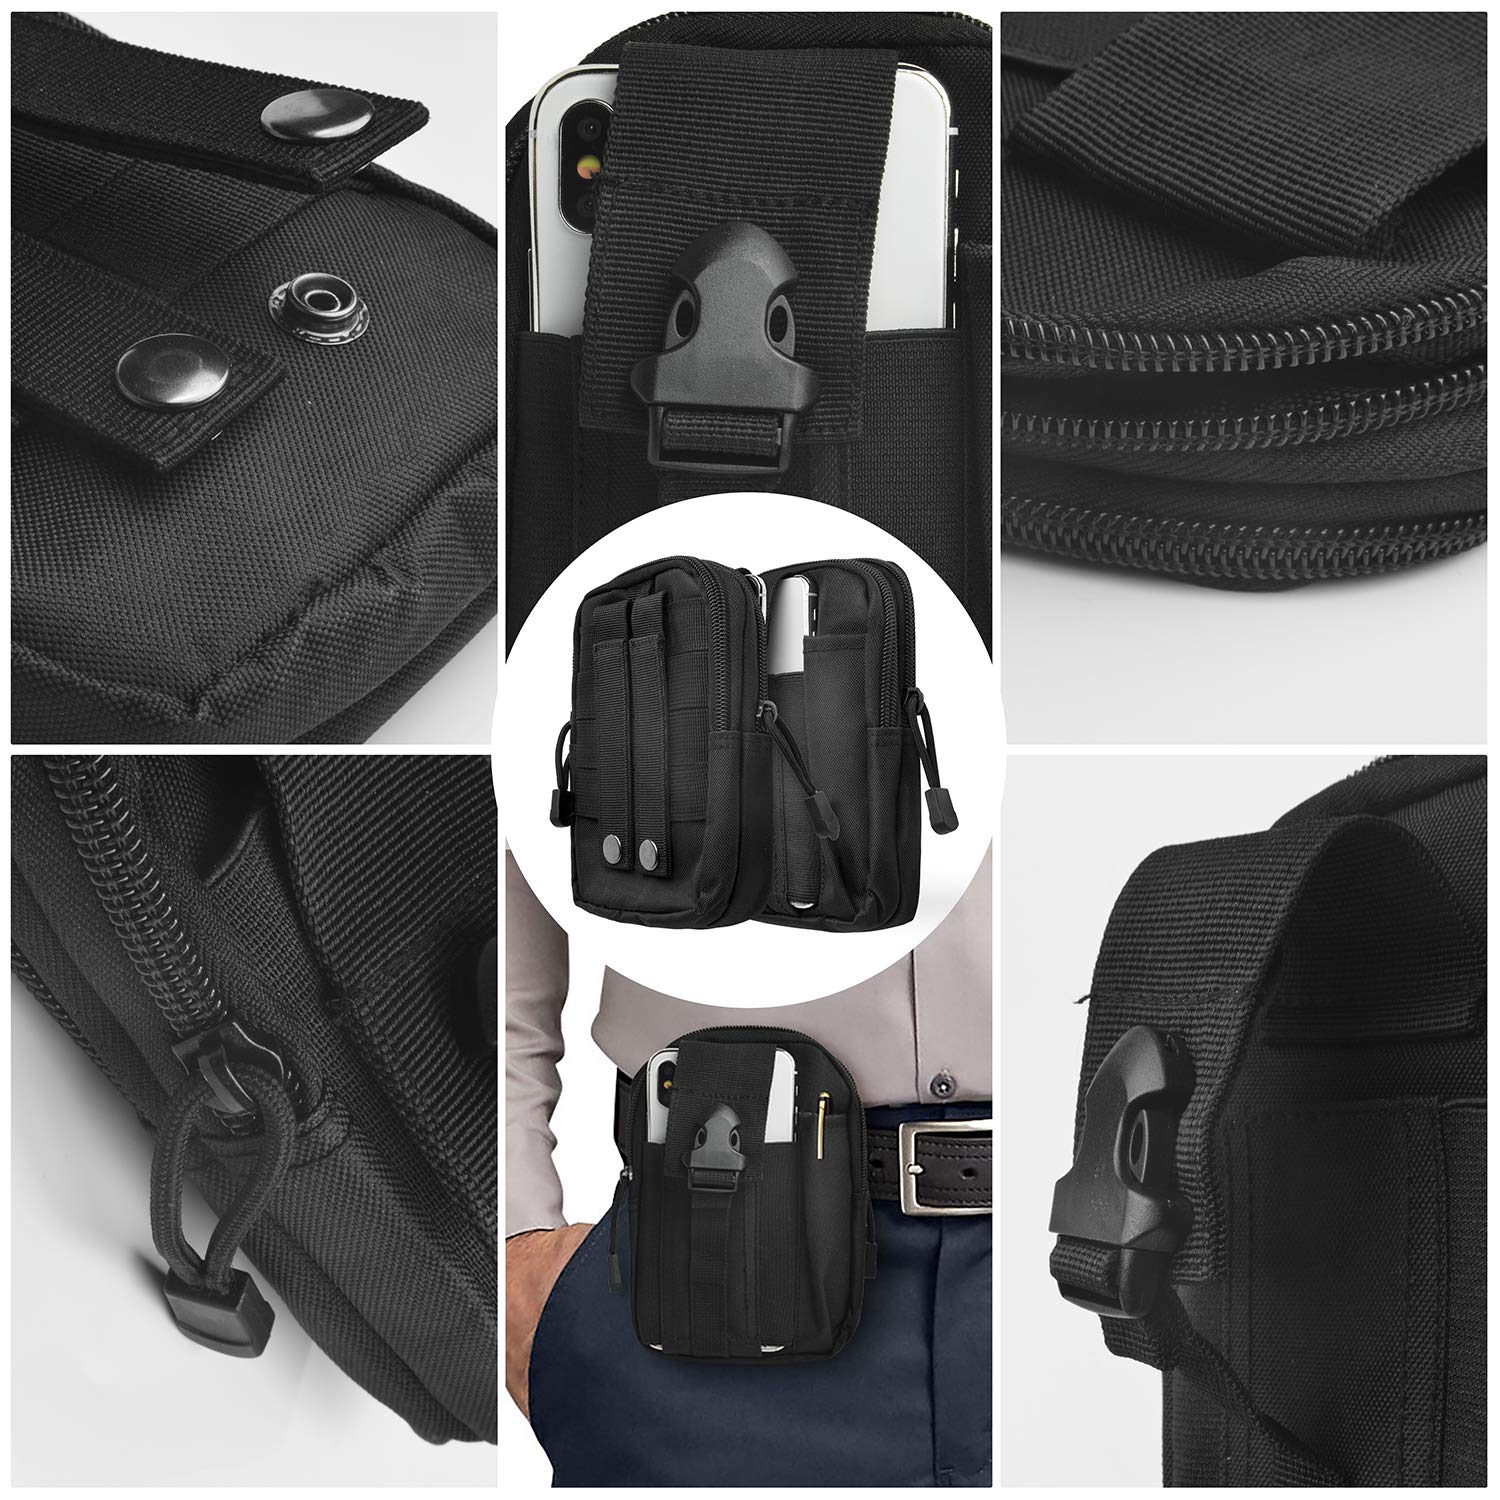 Pixel Moto Z Force Play WATACHE Tactical Molle Pouch EDC Men Belt Waist Bag Utility Gadget Gear Tool Organizer Pocket with Cell Phone Holster Holder for for iPhone Xs Max Xr,Galaxy S10 Plus Note 10